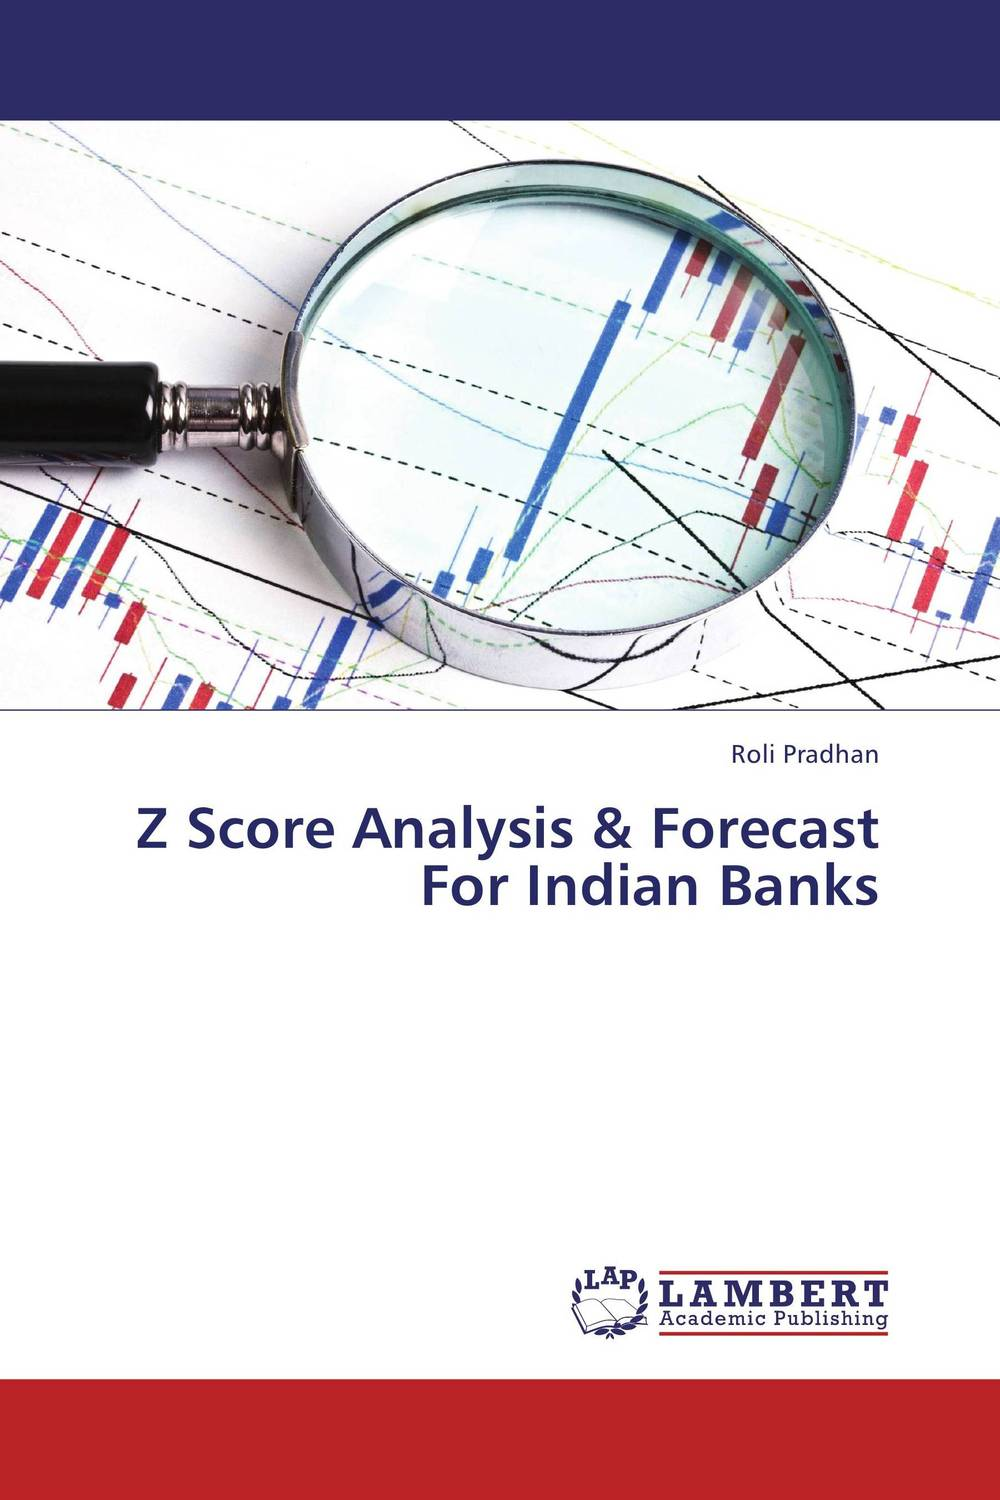 Z Score Analysis & Forecast For Indian Banks credit and risk analysis by banks